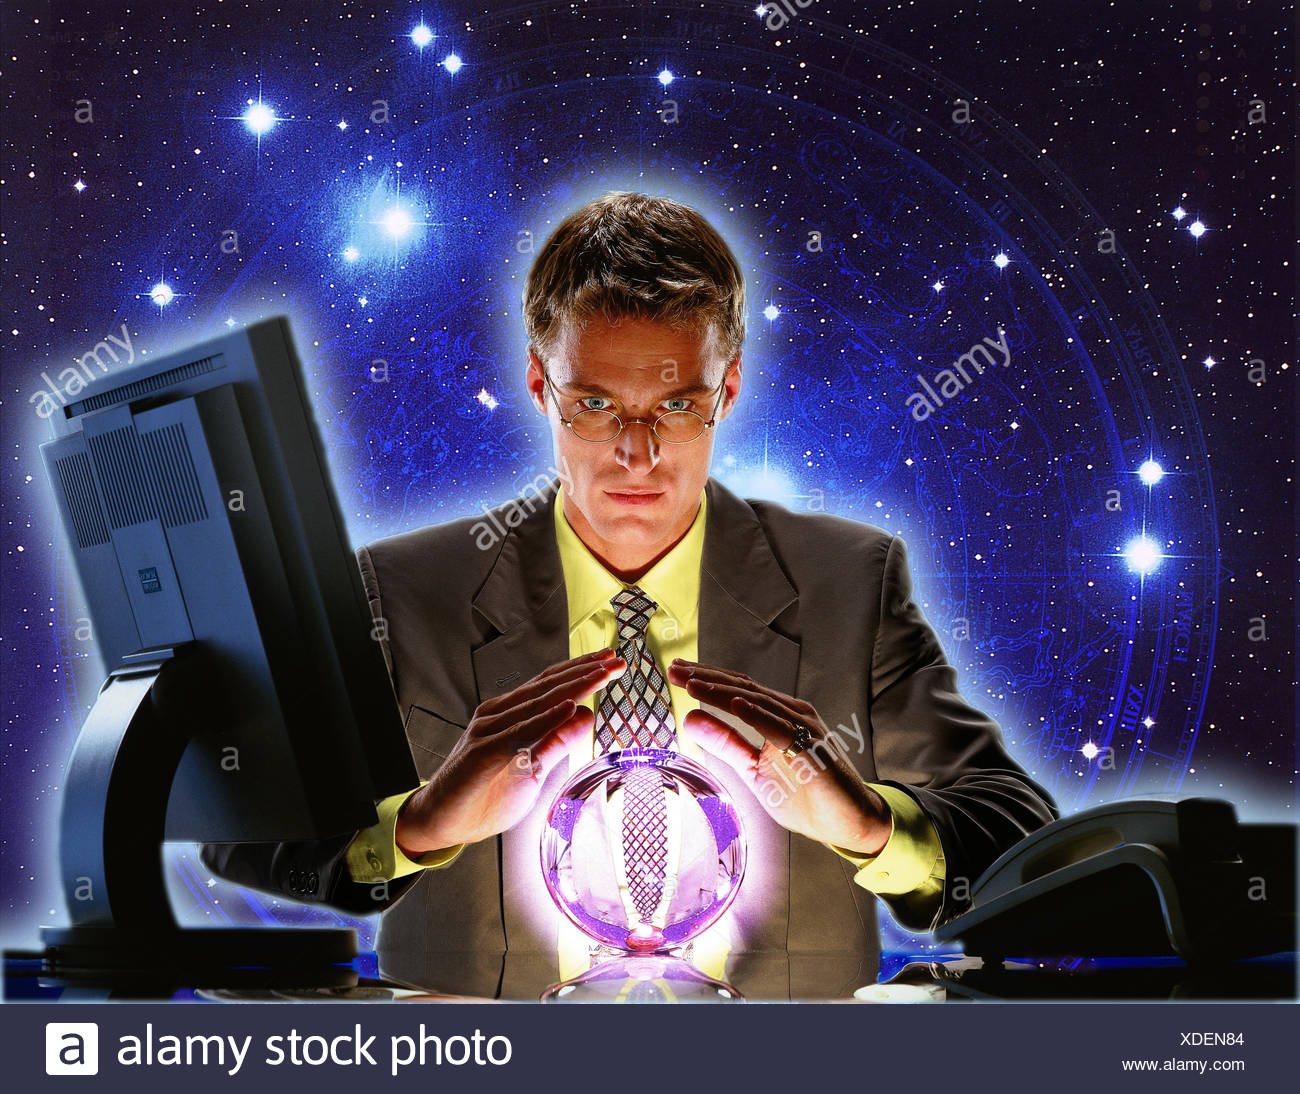 Composing, office, businessman, young, desk, crystal ball, swear, starry skystarry skystarry skies professions, man, glass ball, esotericism, spiritualism, clairvoyance, clairvoyant, foreteller, tell fortunes, invocation, mysticism, night heaven, concentr - Stock Image